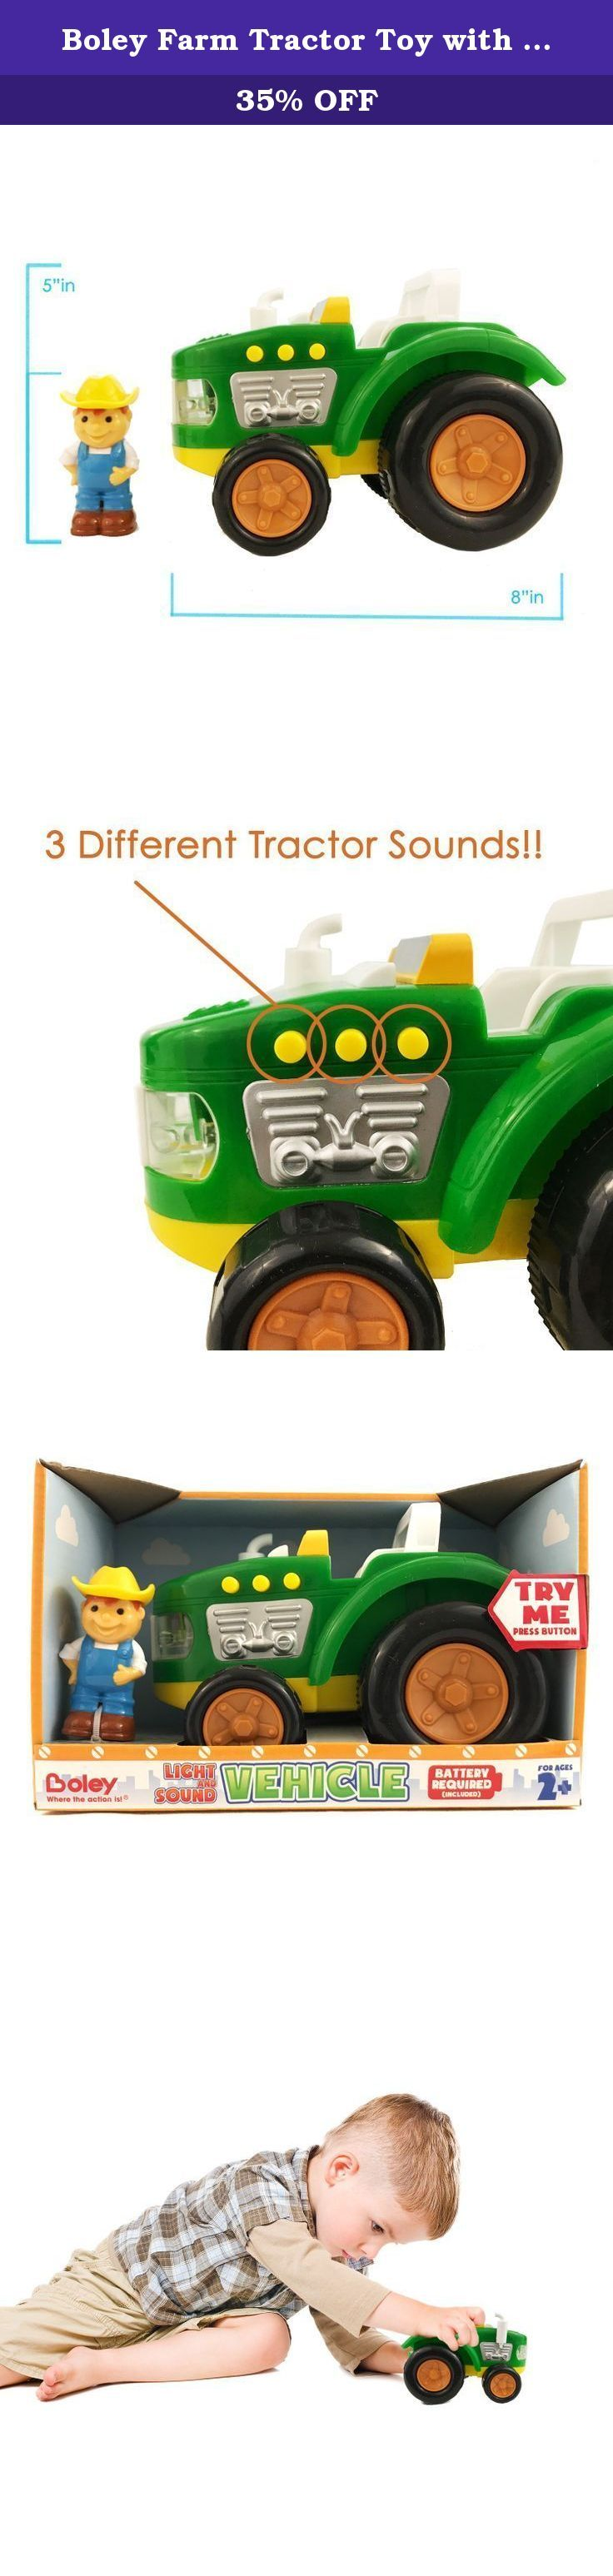 Educational car toys  Boley Farm Tractor Toy with Lights and Sound  Educational toy for